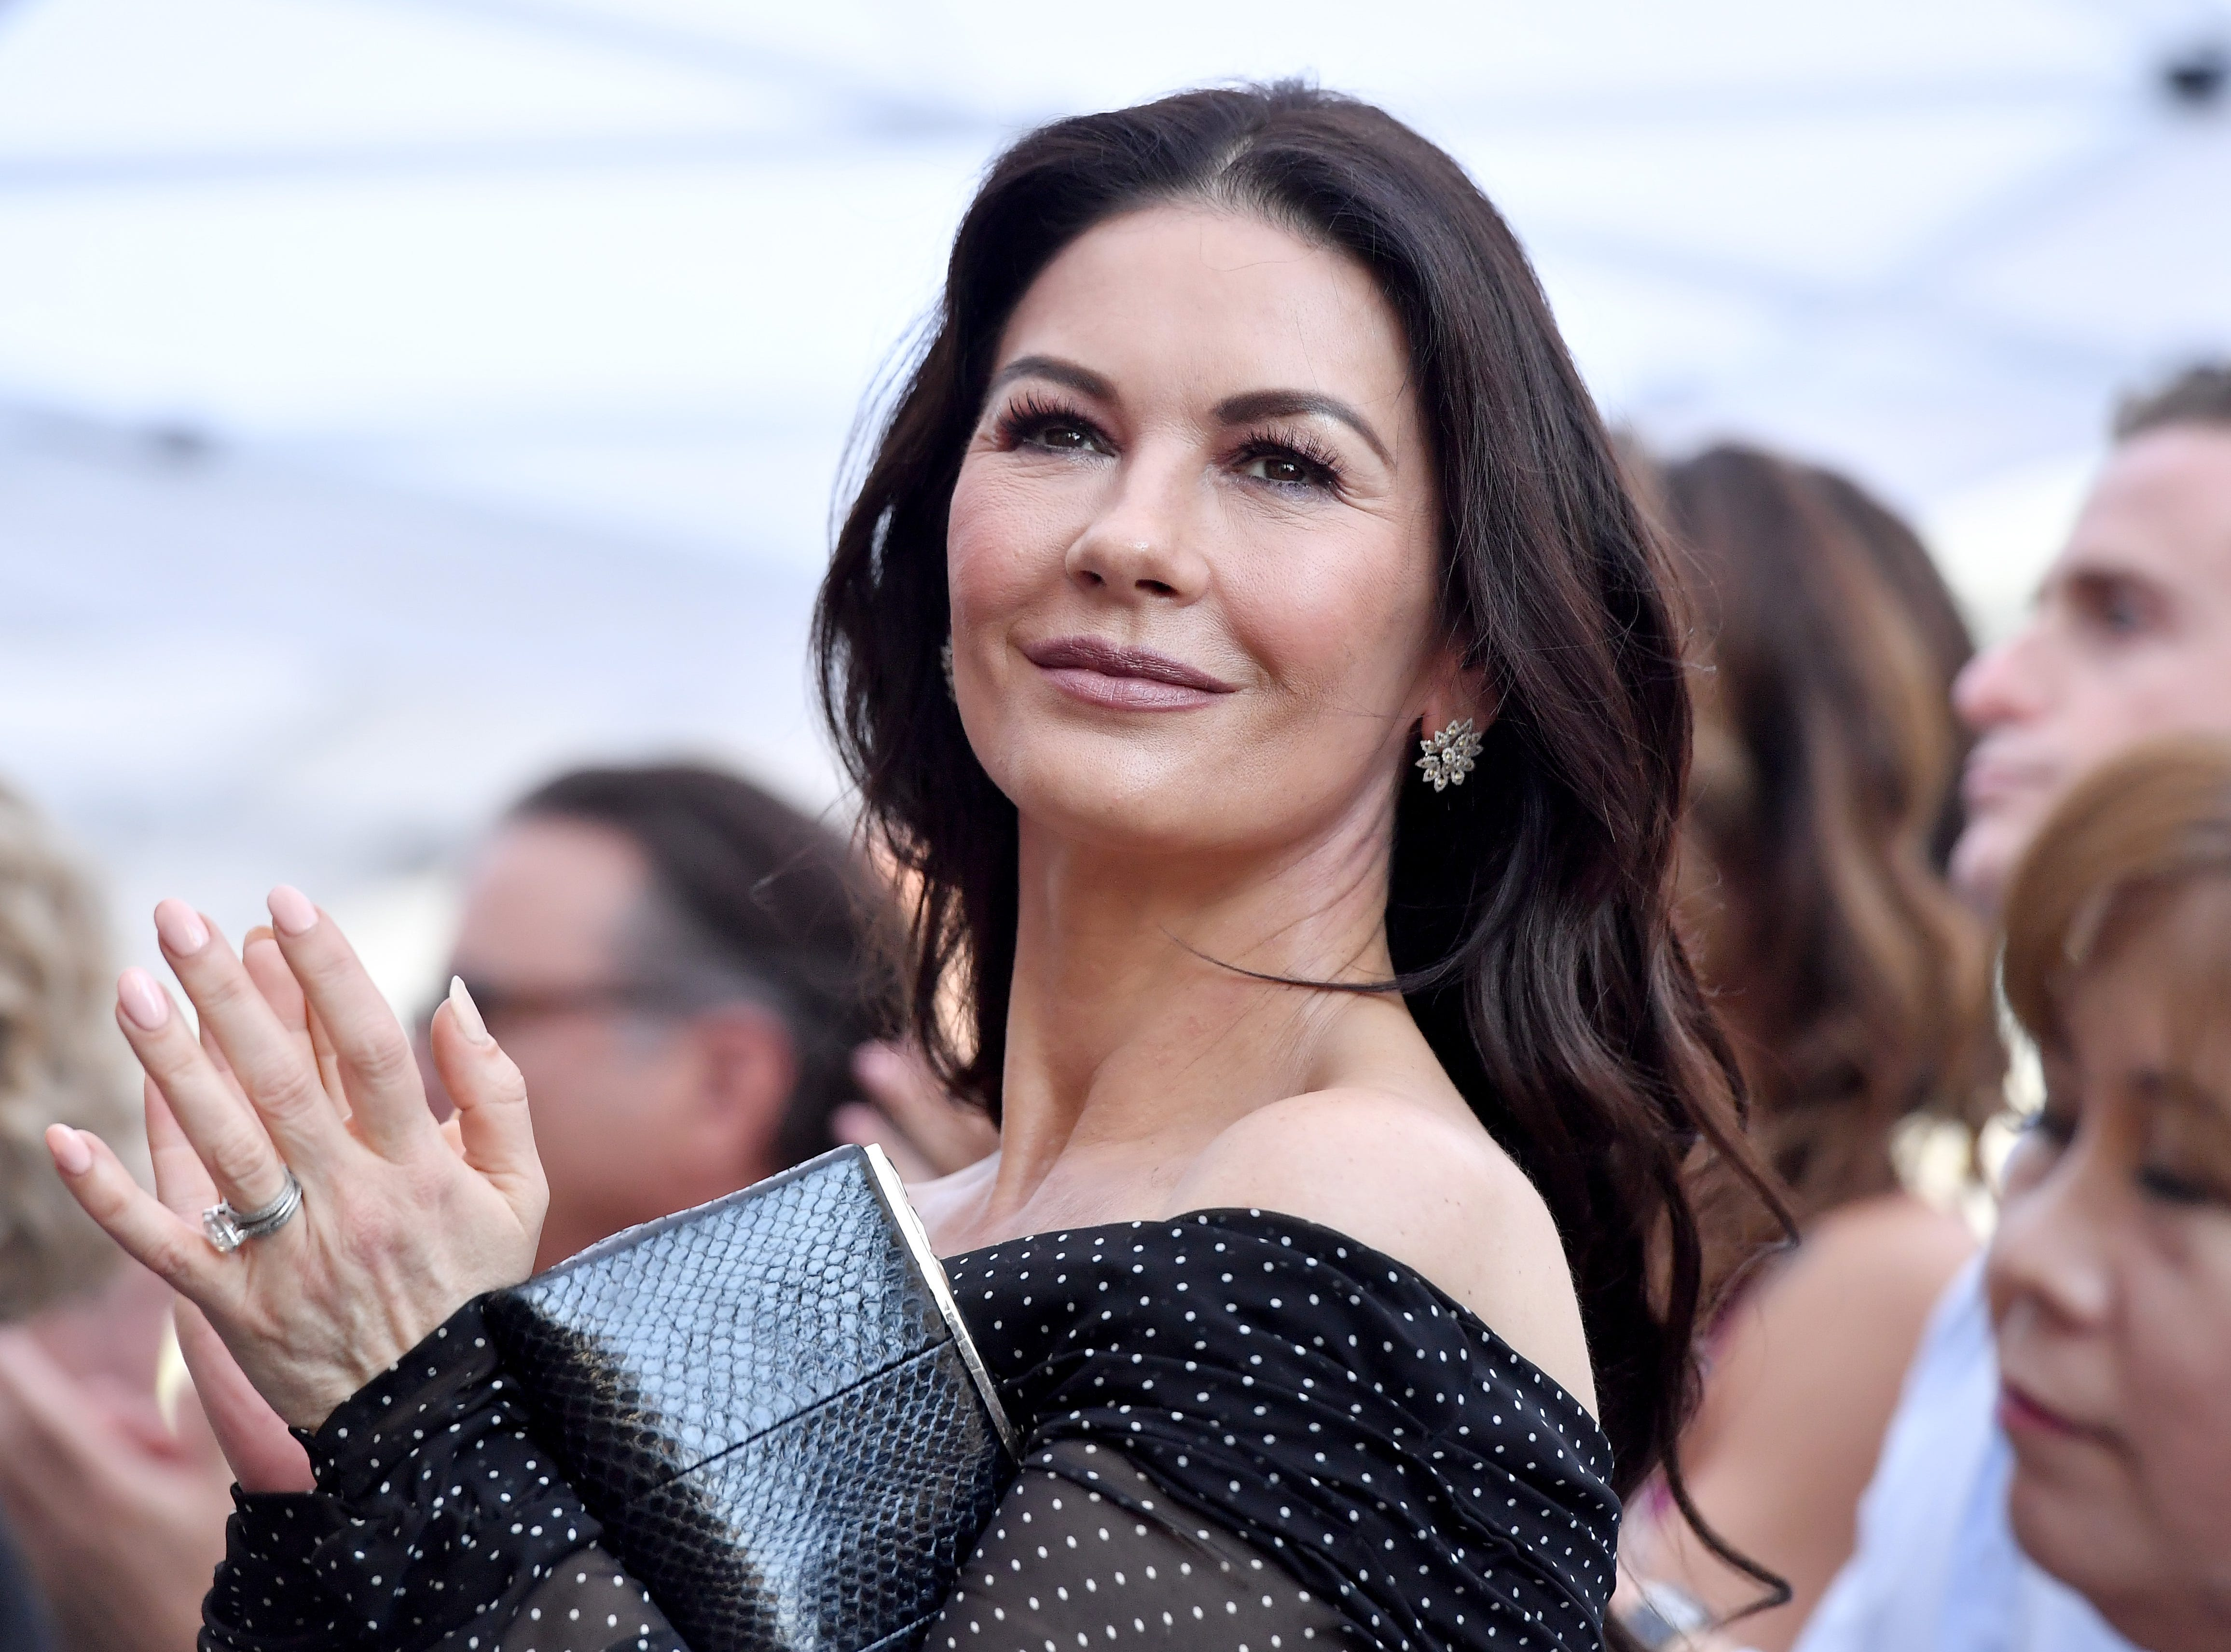 HOLLYWOOD, CA - NOVEMBER 06:  Catherine Zeta-Jones attends the ceremony honoring Michael Douglas with star on the Hollywood Walk of Fame on November 06, 2018 in Hollywood, California.  (Photo by Axelle/Bauer-Griffin/FilmMagic) ORG XMIT: 775248764 ORIG FILE ID: 1058405004